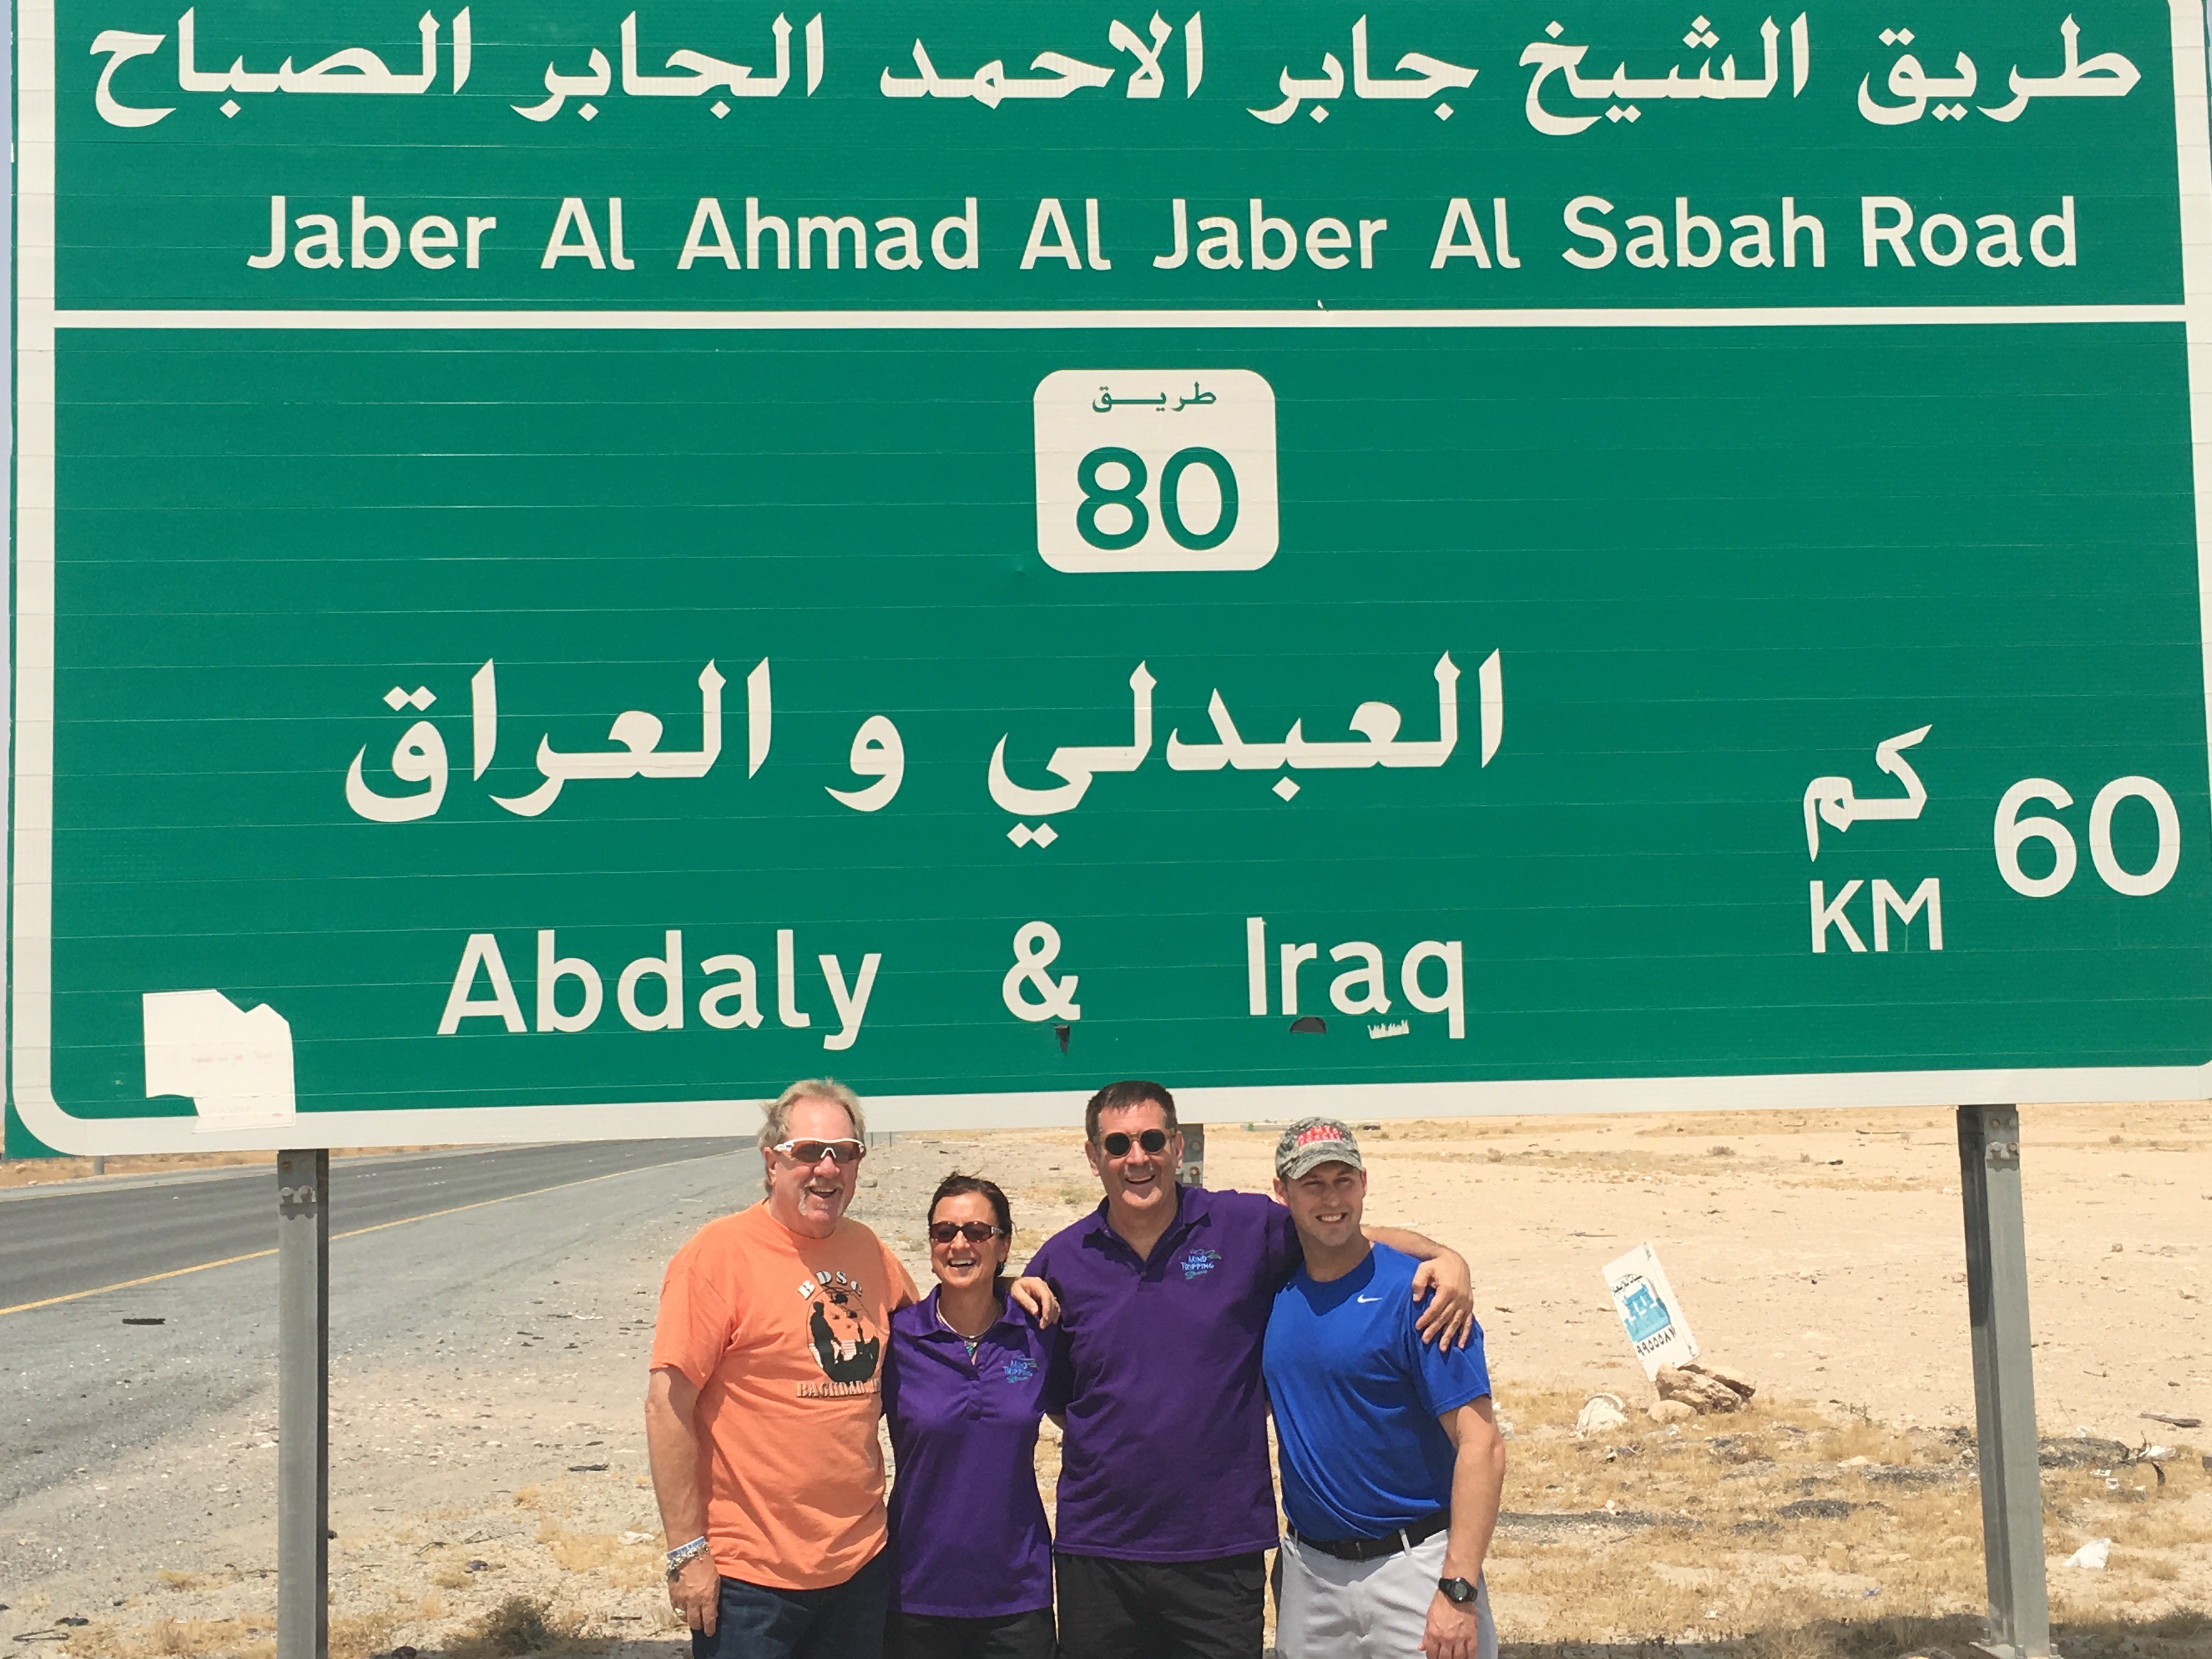 Famous highway sign in Kuwait.